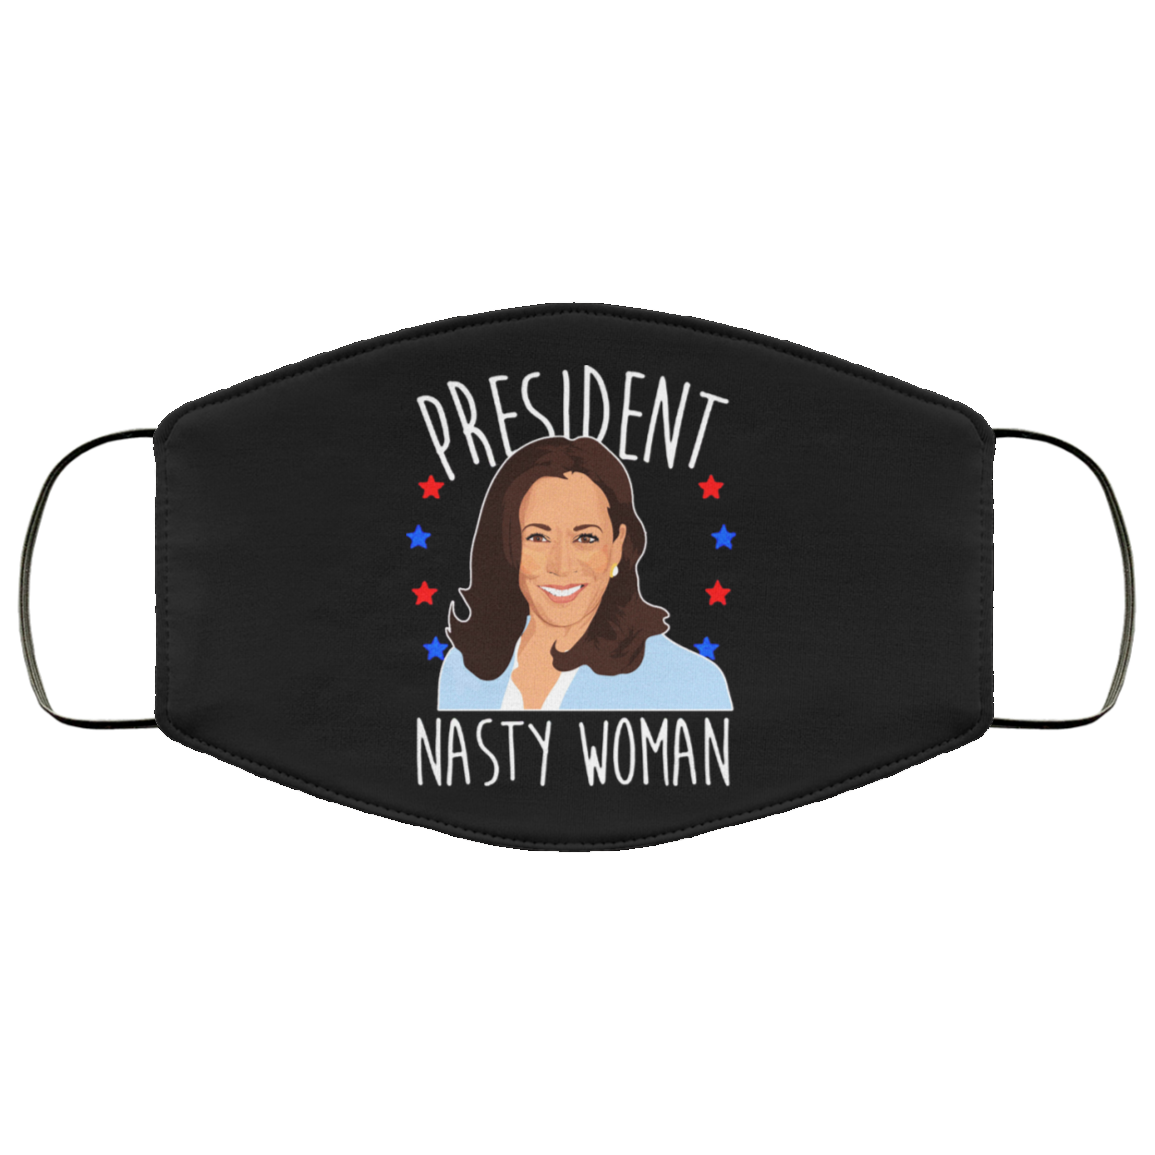 President Nasty Woman Kamala Harris President 2020 Campaign Face Mask